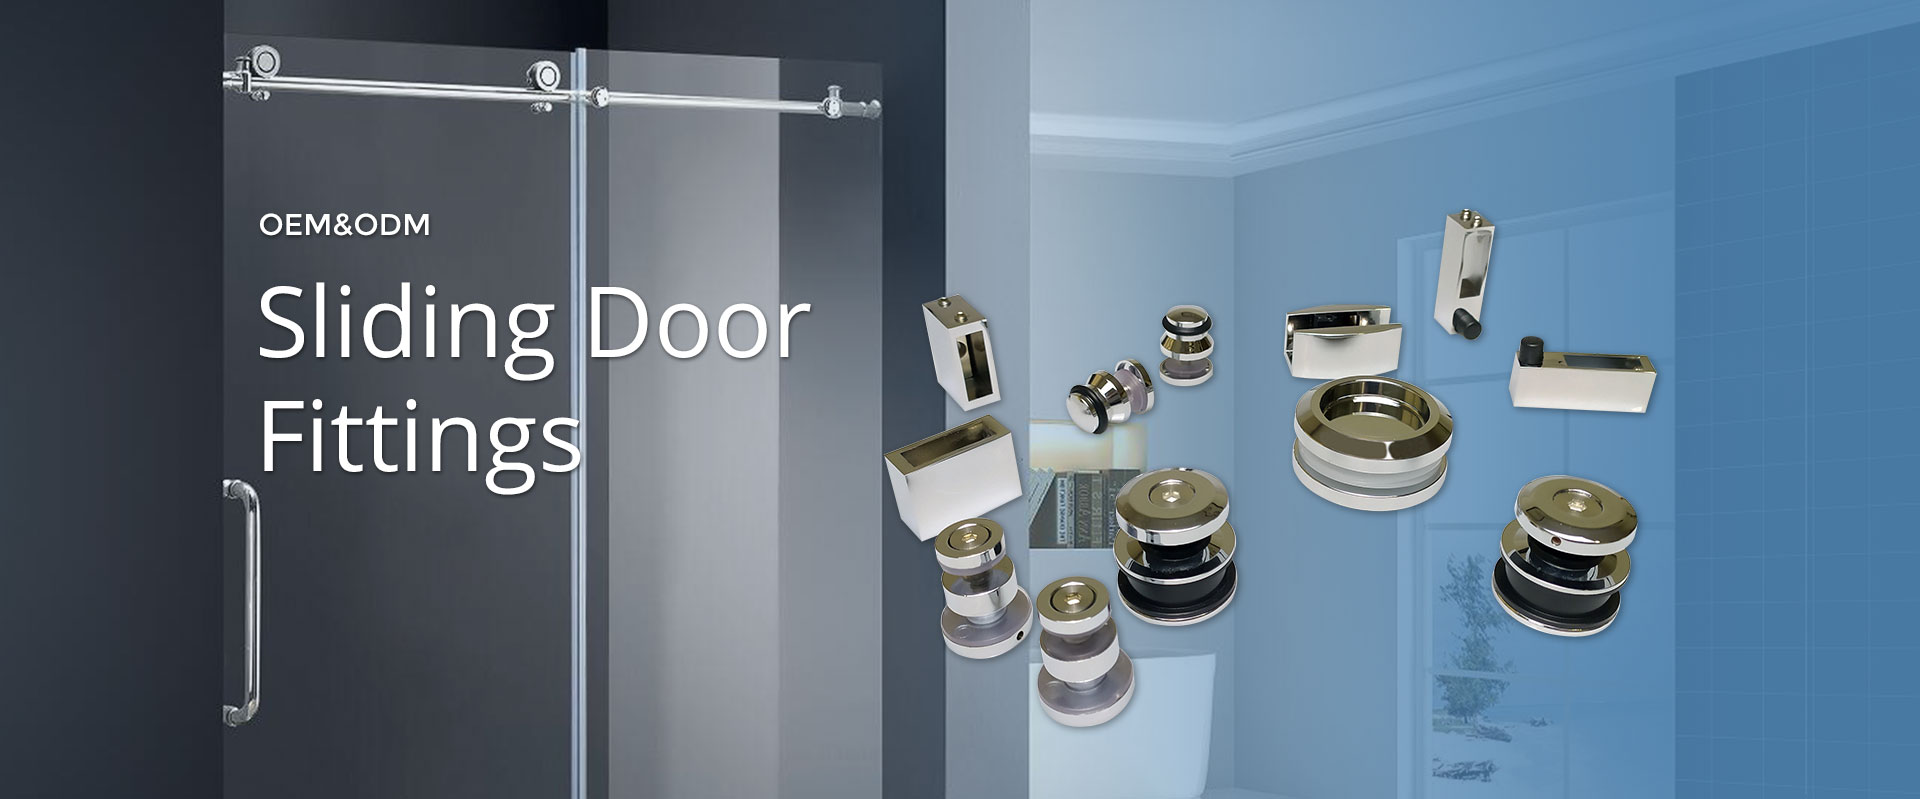 Sliding Door Fittings